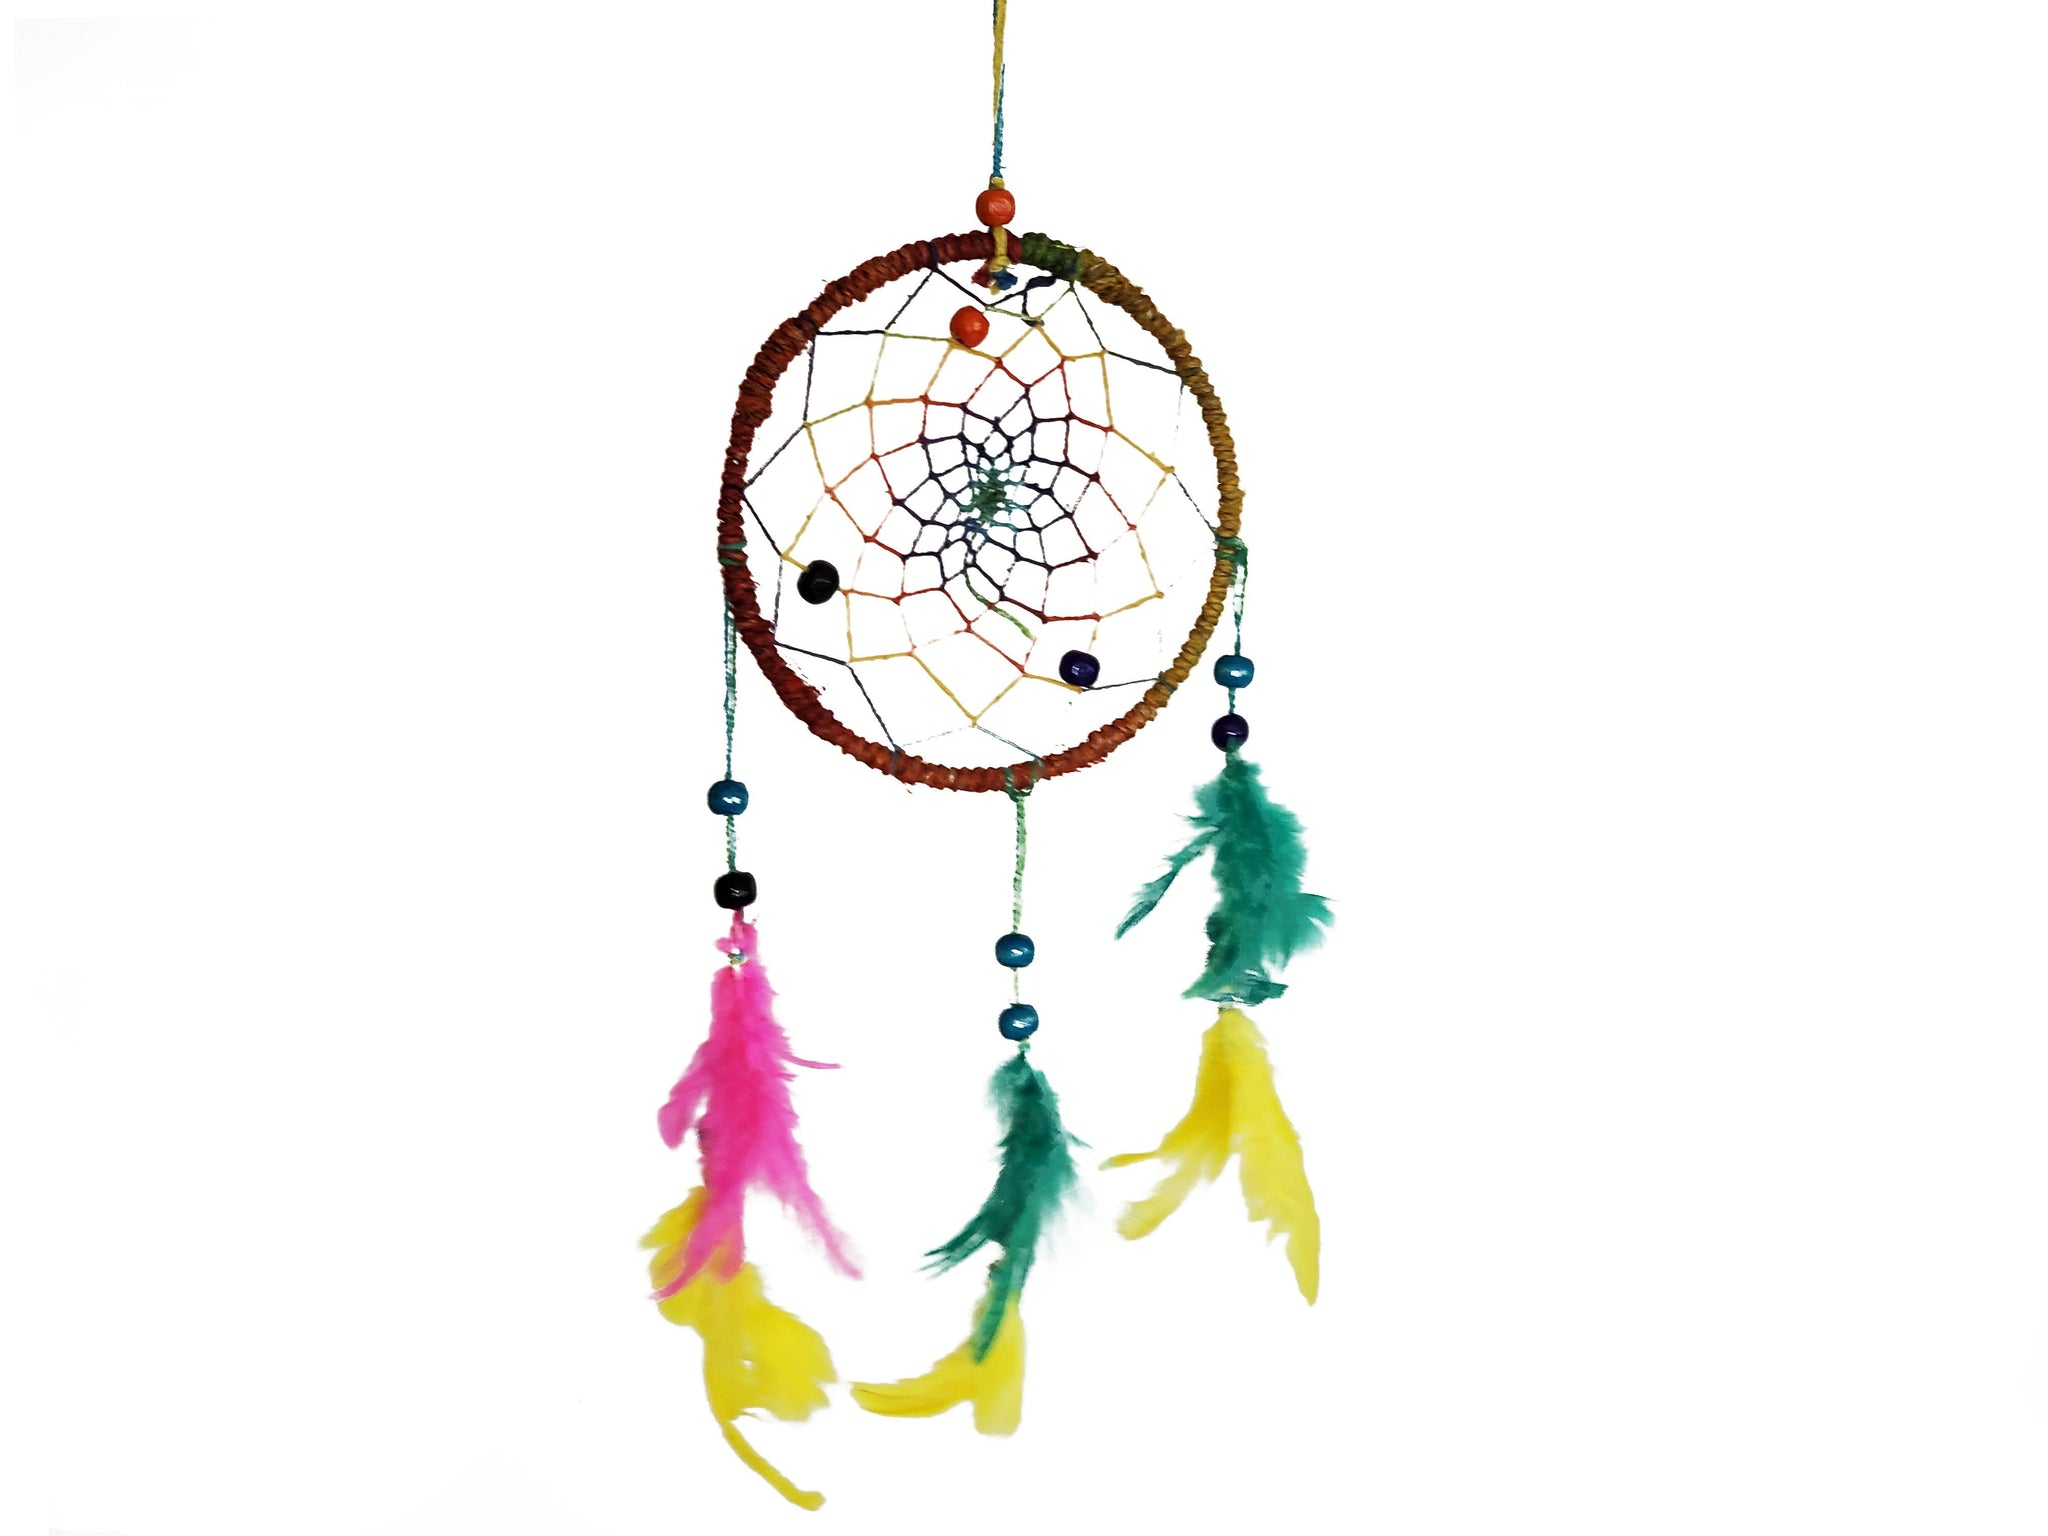 Colorful Dream Catcher | Handmade Dream Catcher | Pink, Yellow & Green - yala garden